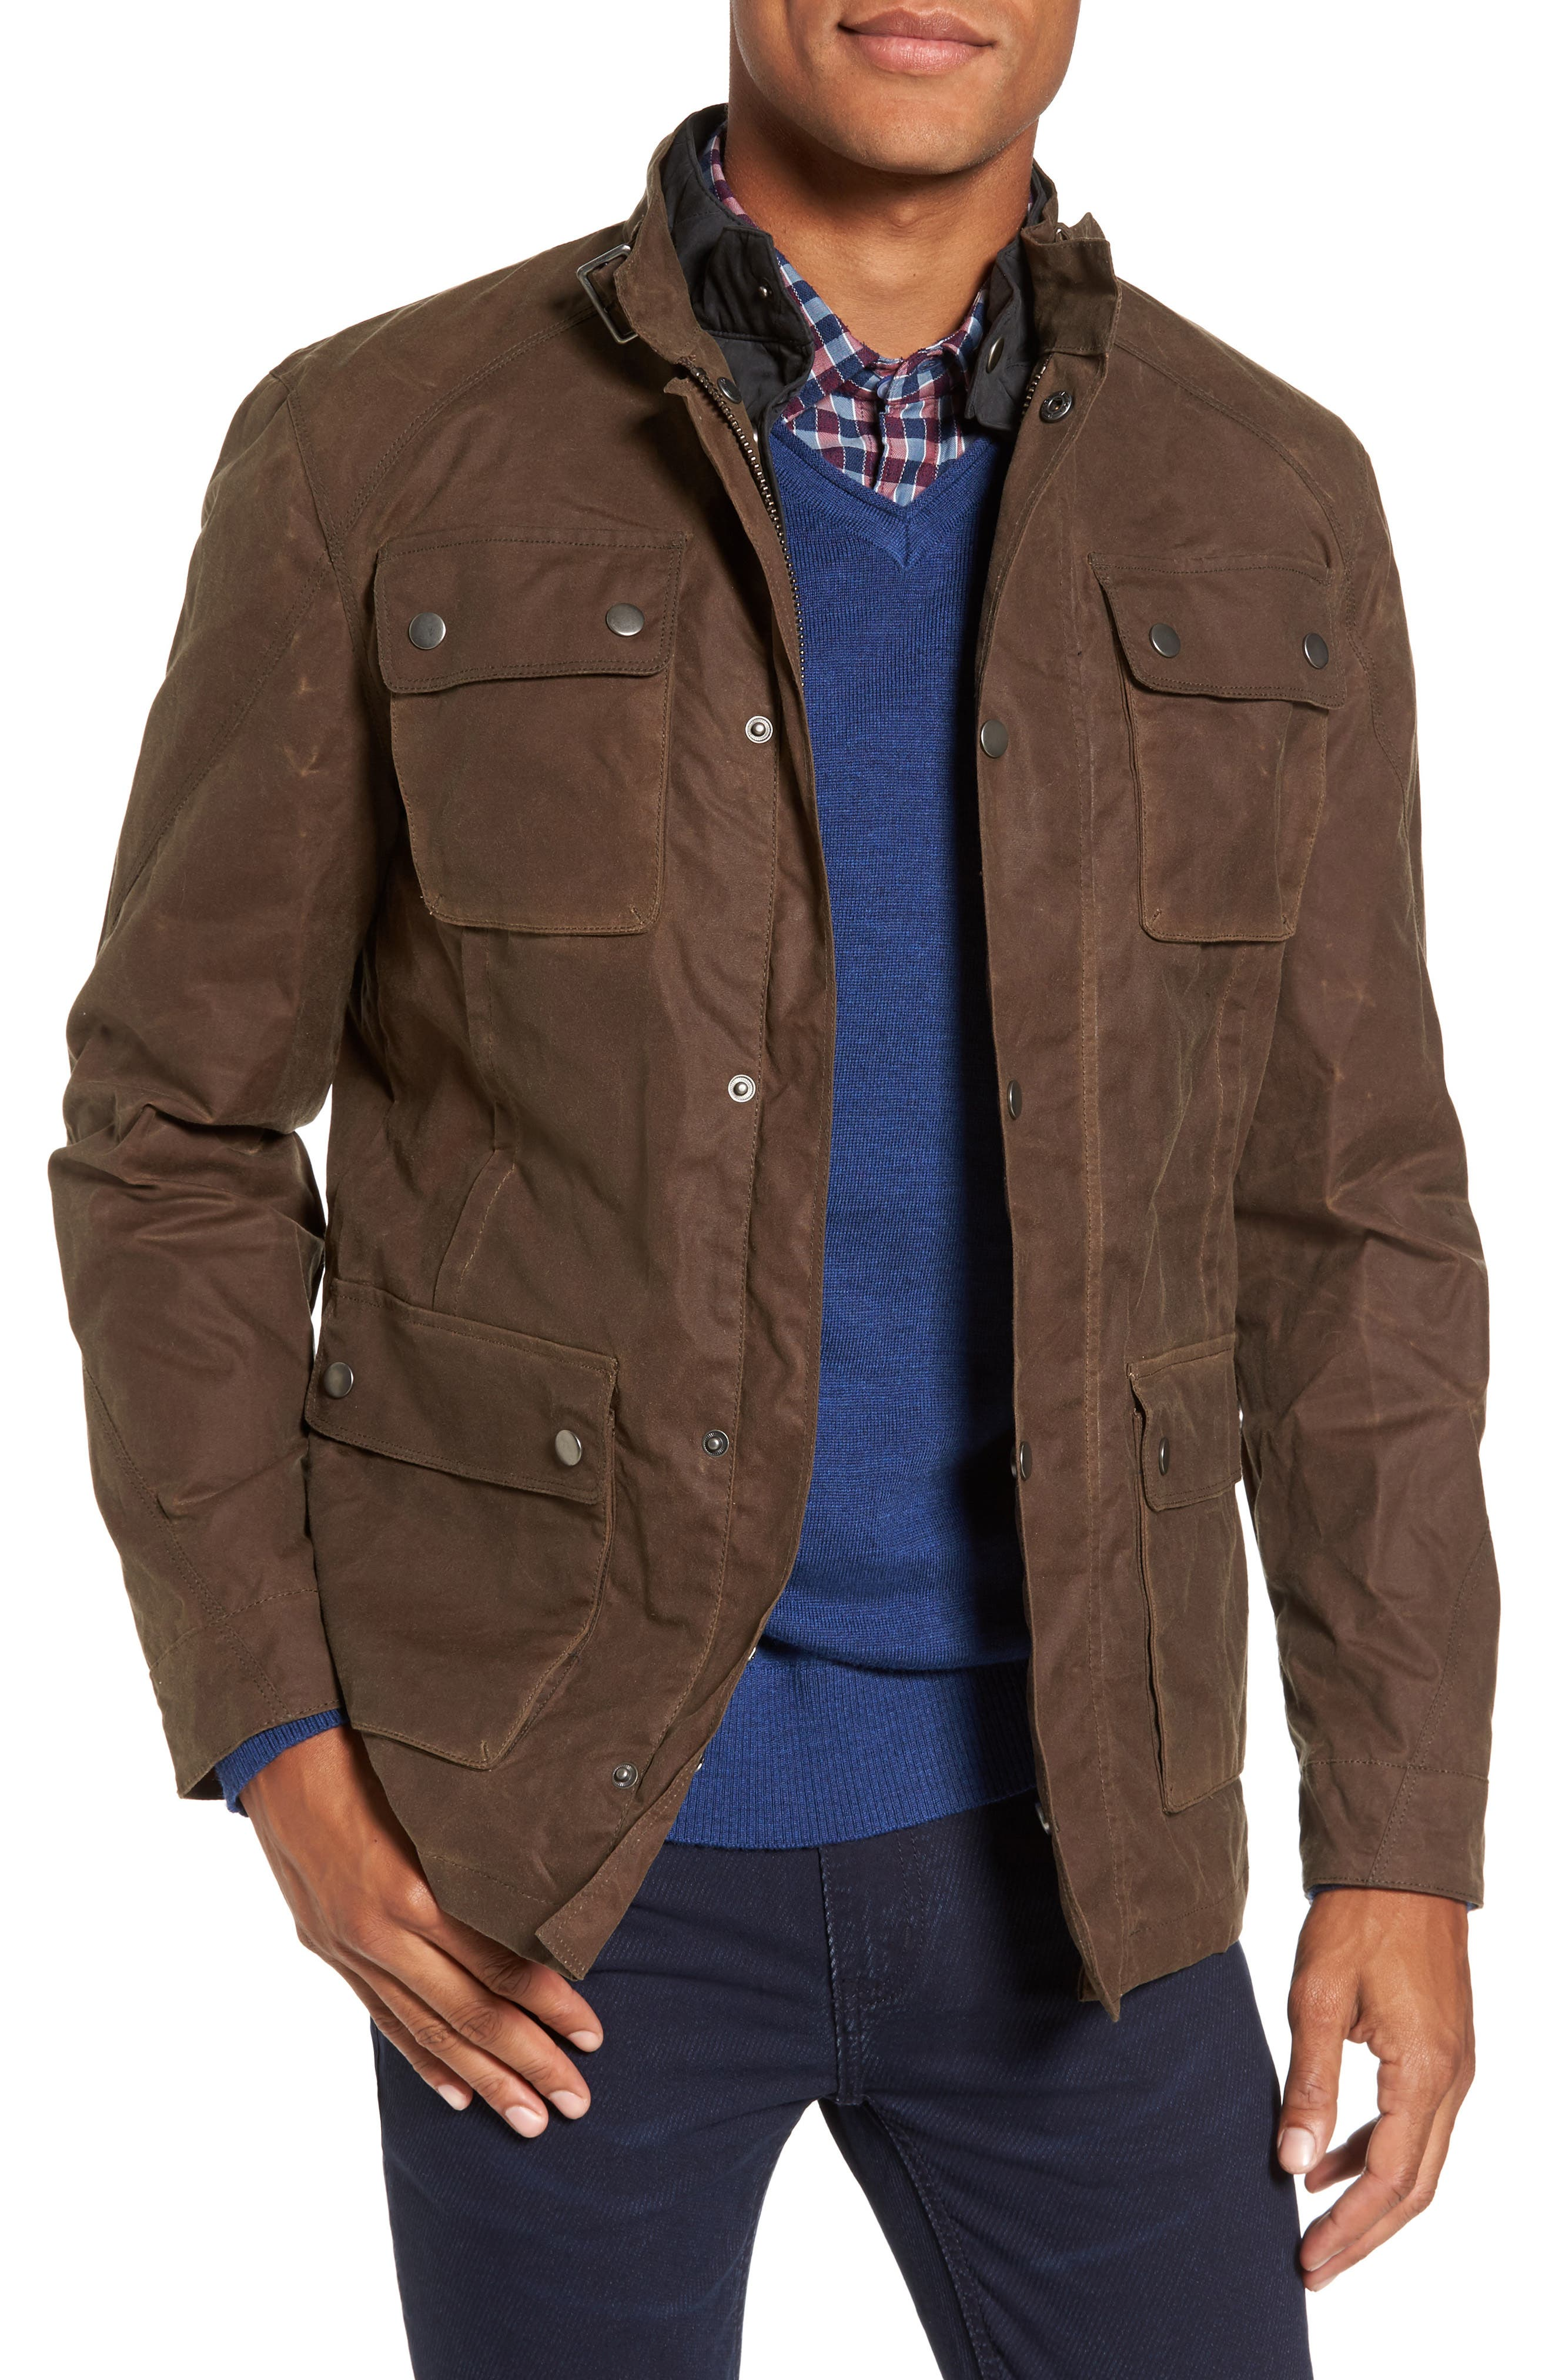 3-in-1 Waxed Cotton Jacket with Removable Vest,                         Main,                         color, Dark Tan